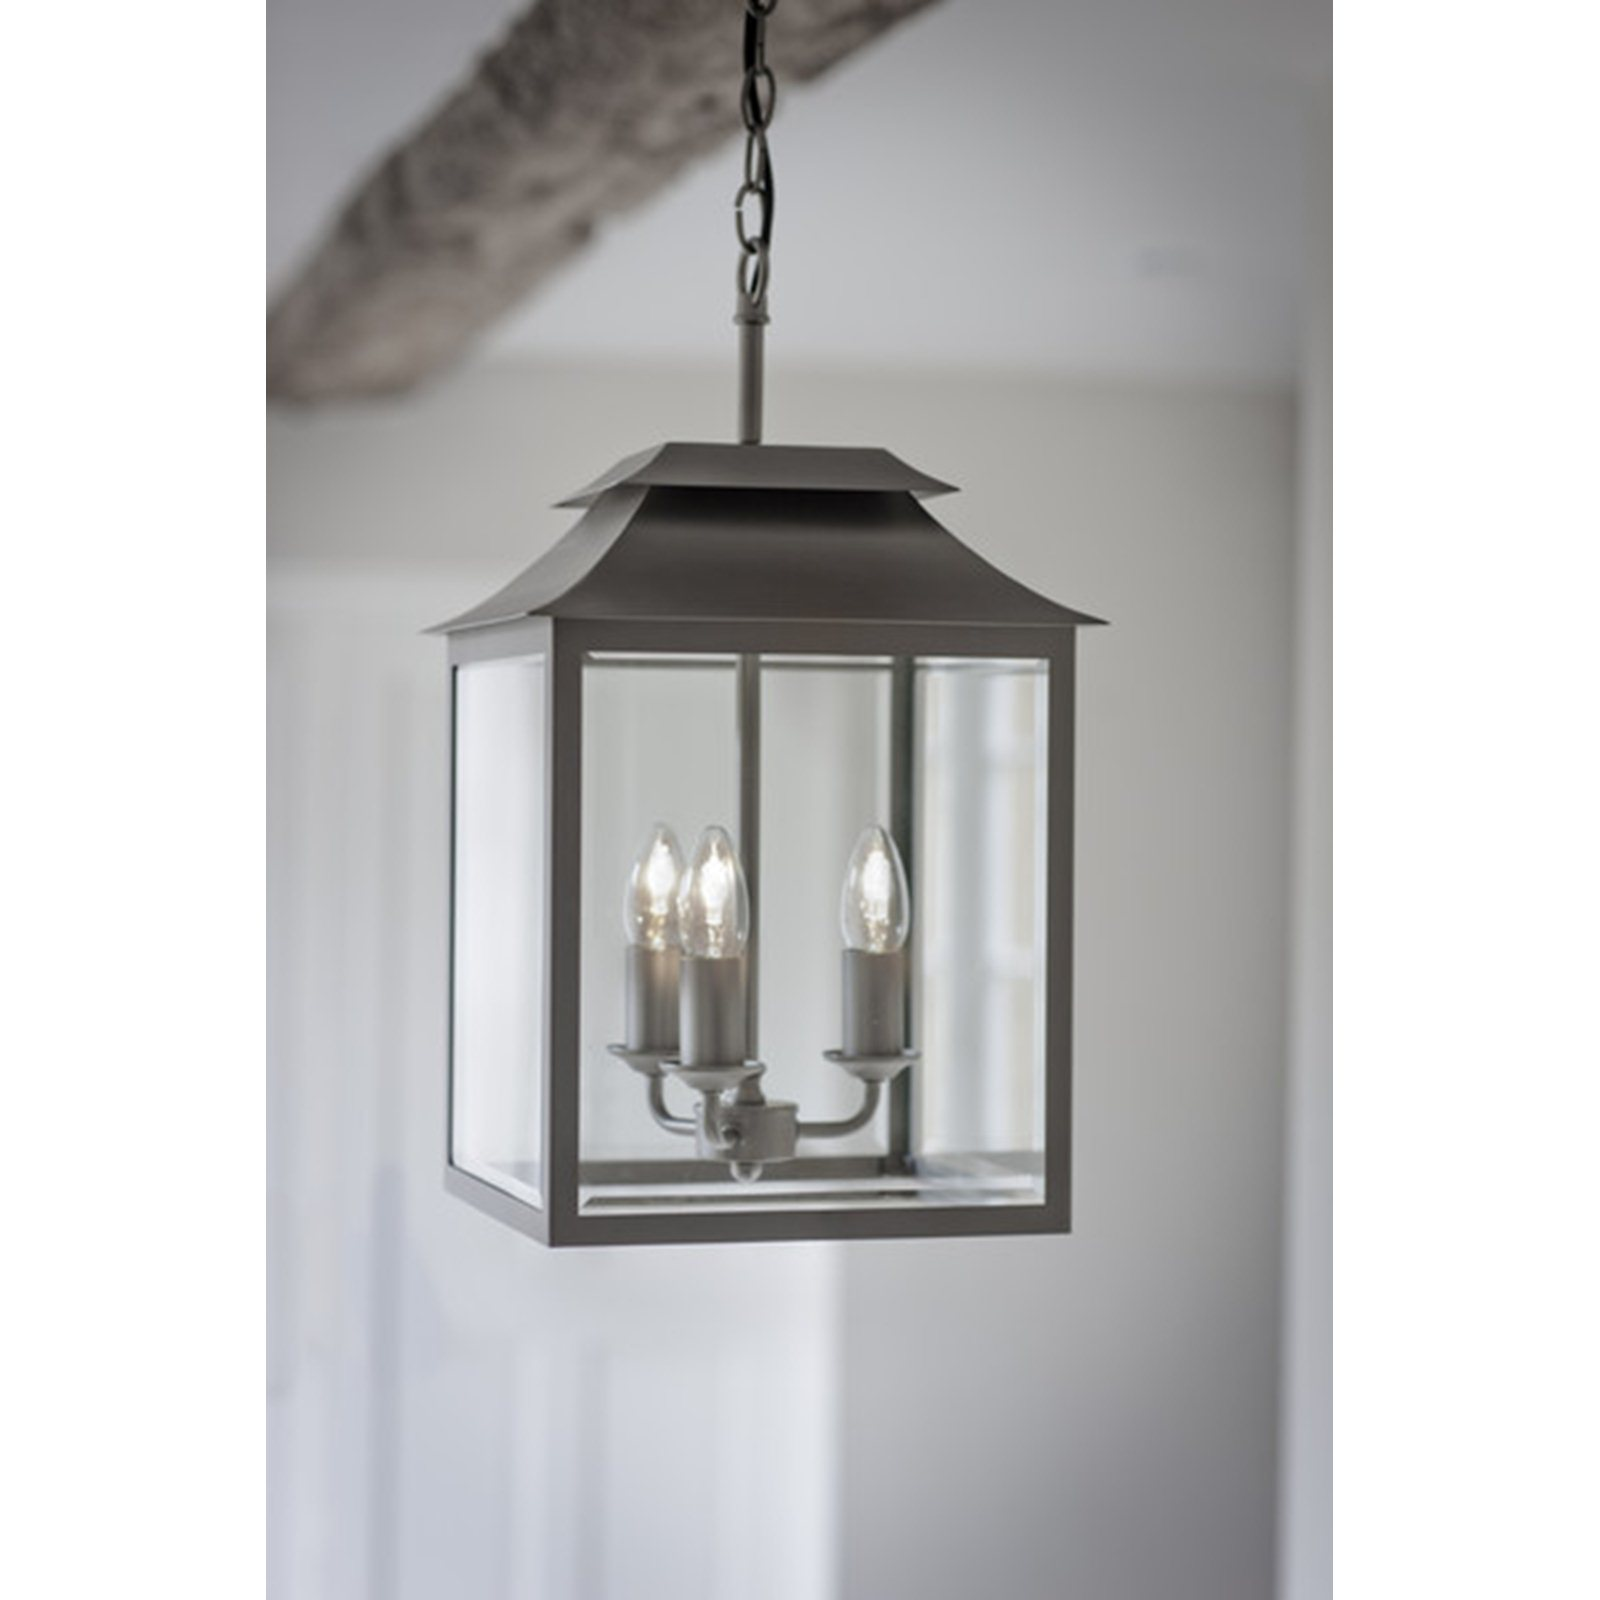 Beach Hanging Lights Hicks And Hicks Manor Pendant Light Hicks And Hicks